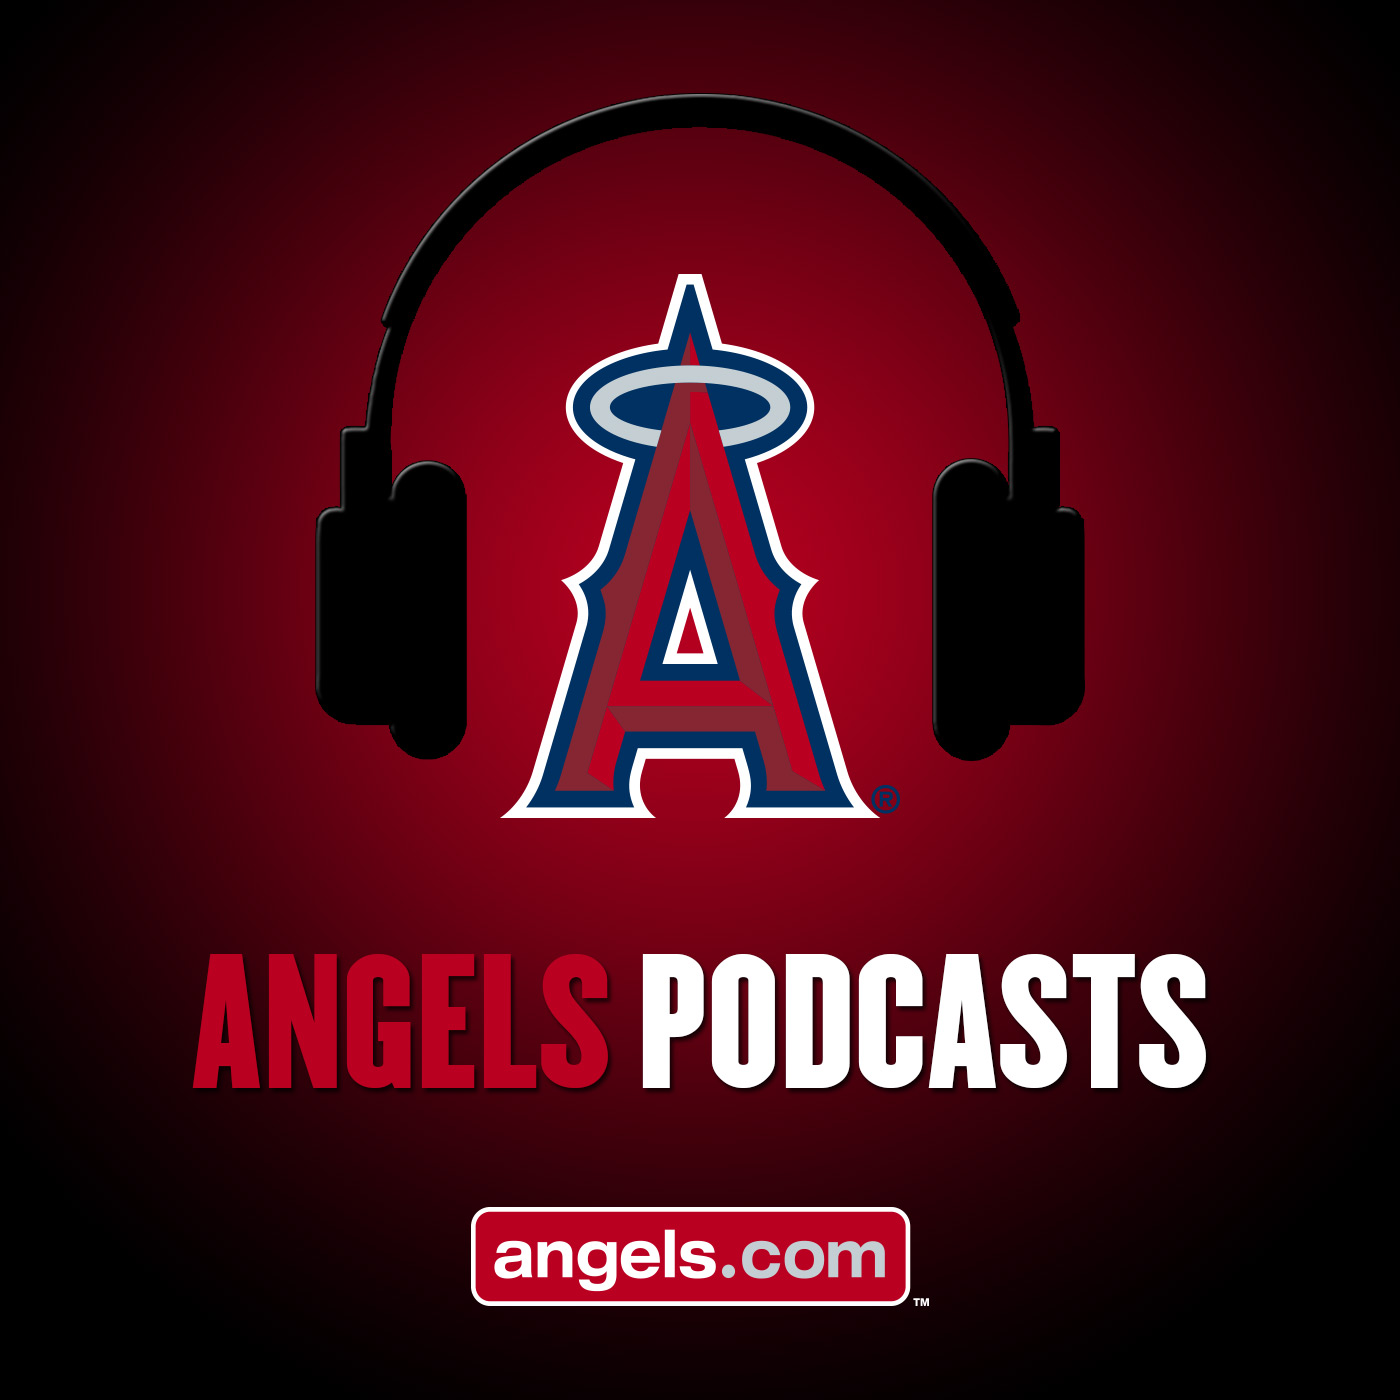 <![CDATA[Los Angeles Angels Podcast]]>